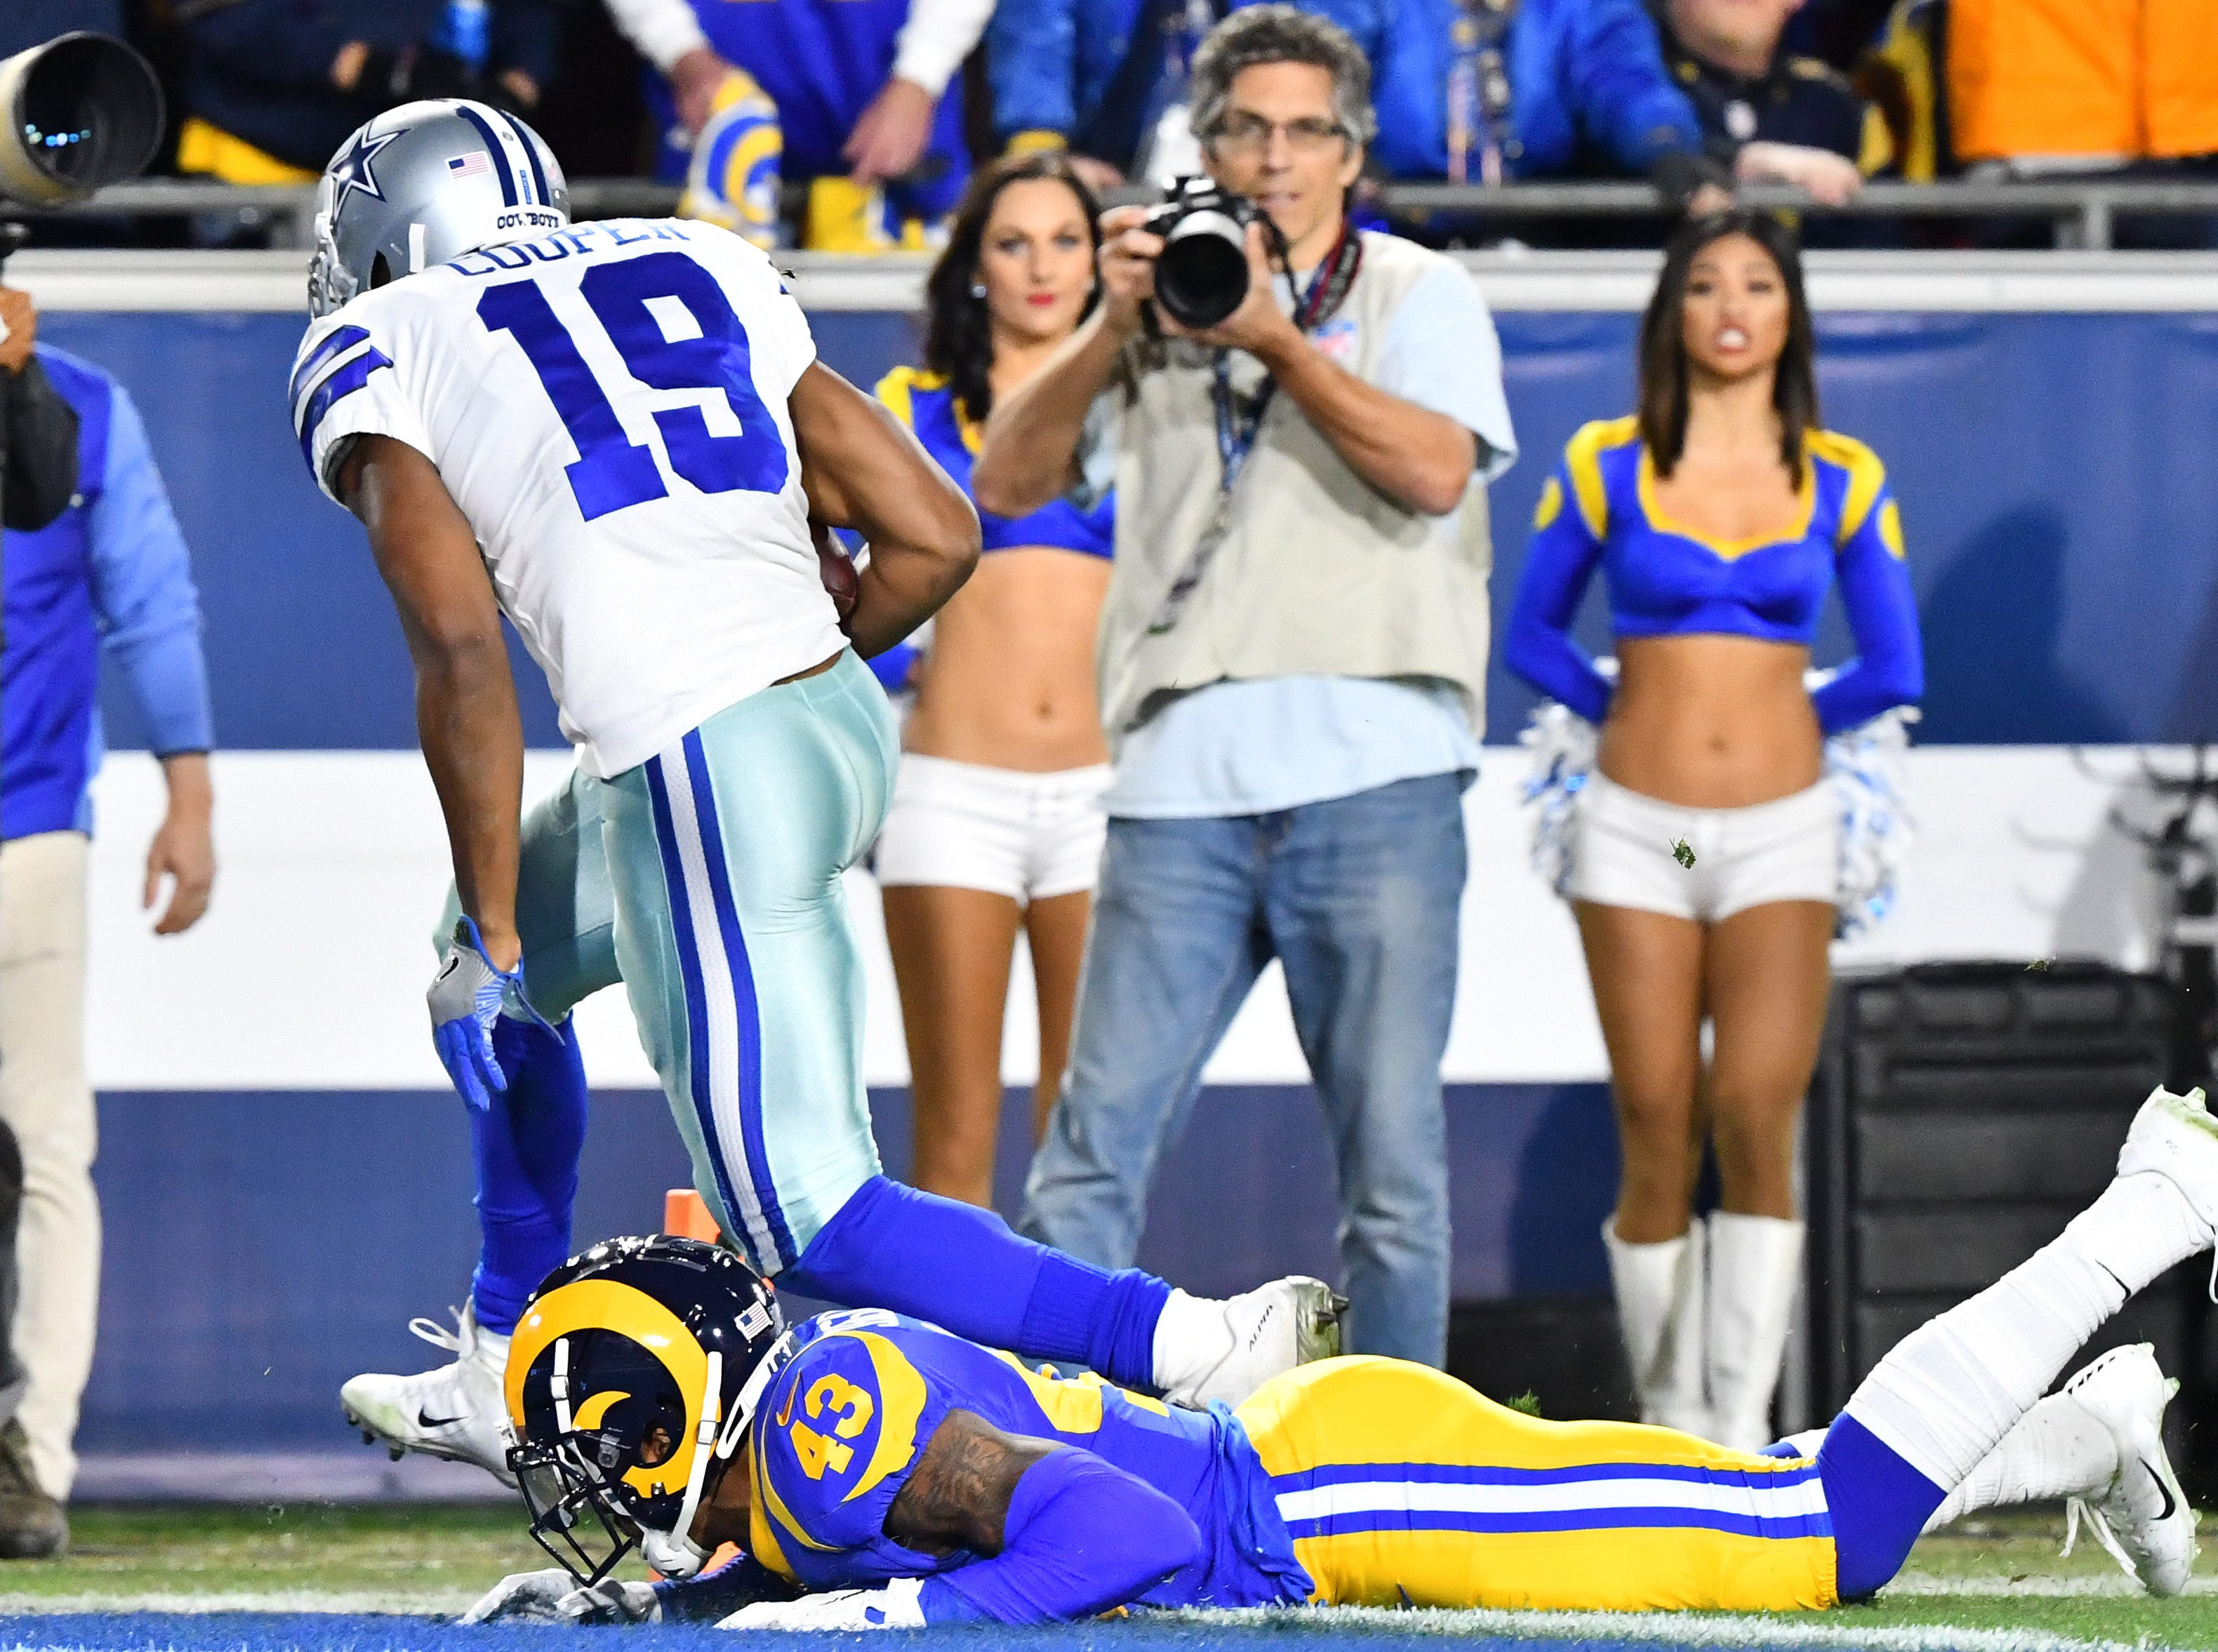 Dallas Cowboys wide receiver Amari Cooper (19) scores a touchdown against the Los Angeles Rams in the first quarter at the Los Angeles Memorial Coliseum.